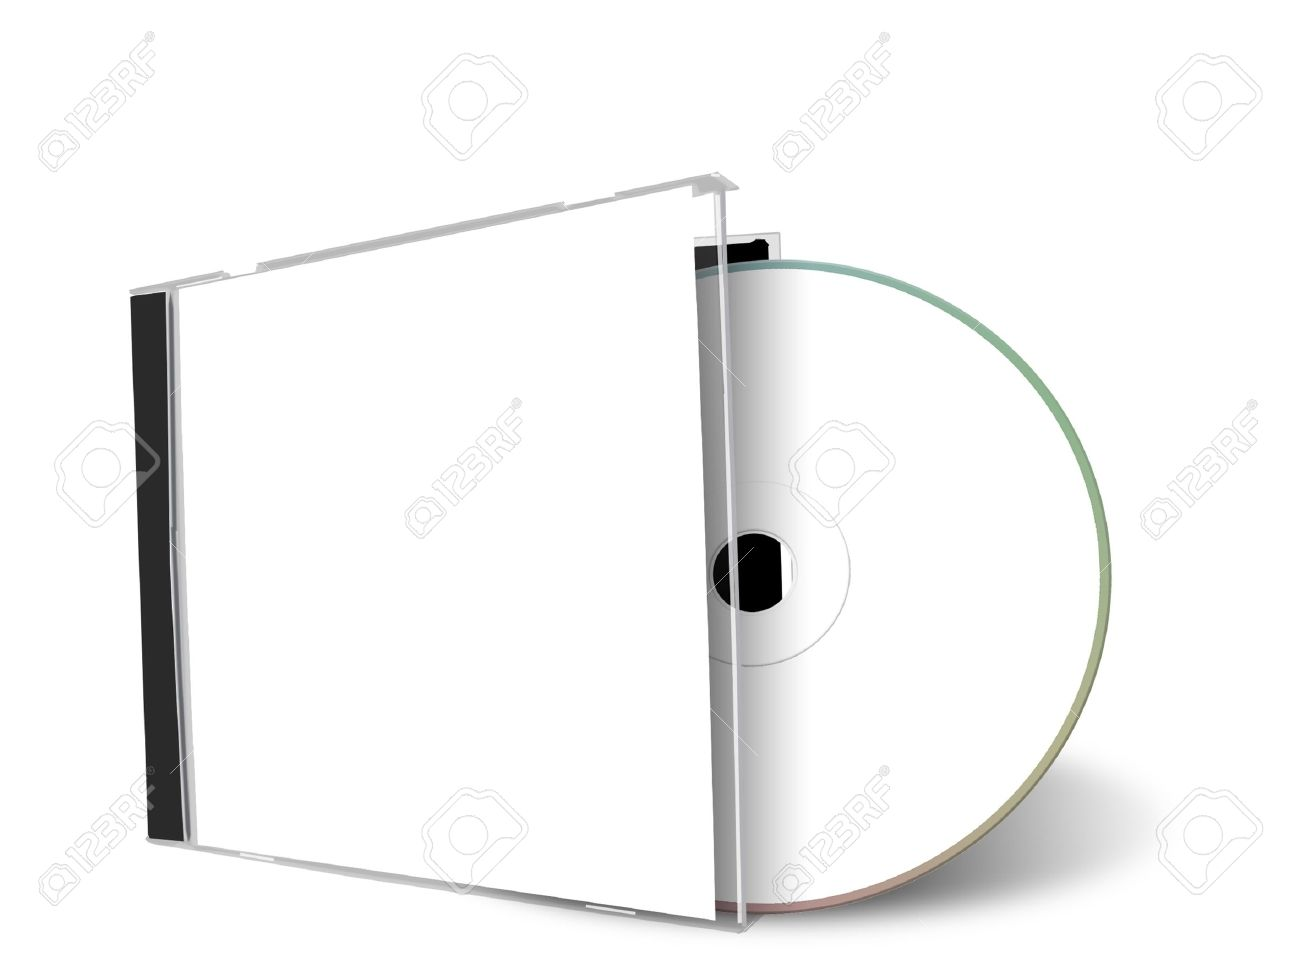 Blank Cd Cover Isolated On A White Background Stock Photo, Picture ...